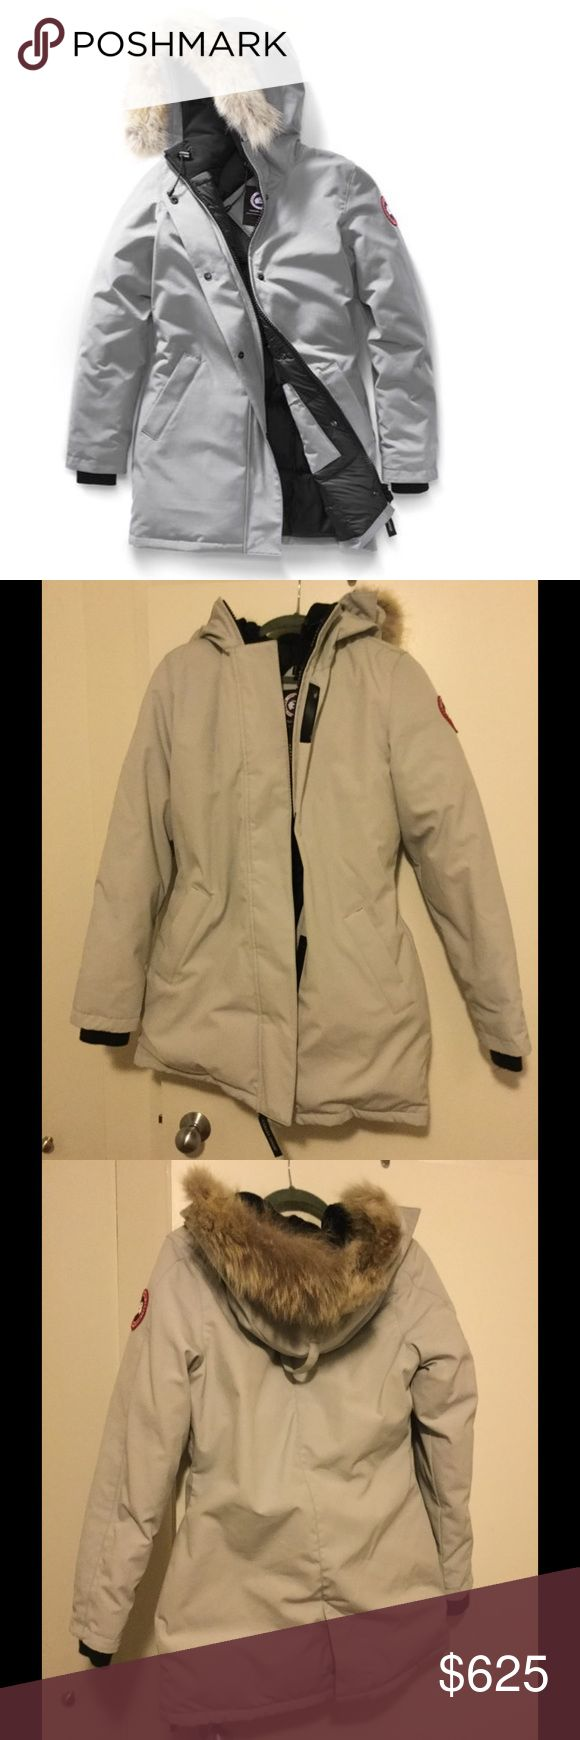 Canada Goose Light Grey Parka Perfect condition Canada Goose Victoria Parka jacket in Light Grey. NEVER WORN! Color is called Limestone on the Canada Goose website. Fur hood can zip off/be removed. Canada Goose Jackets & Coats Puffers